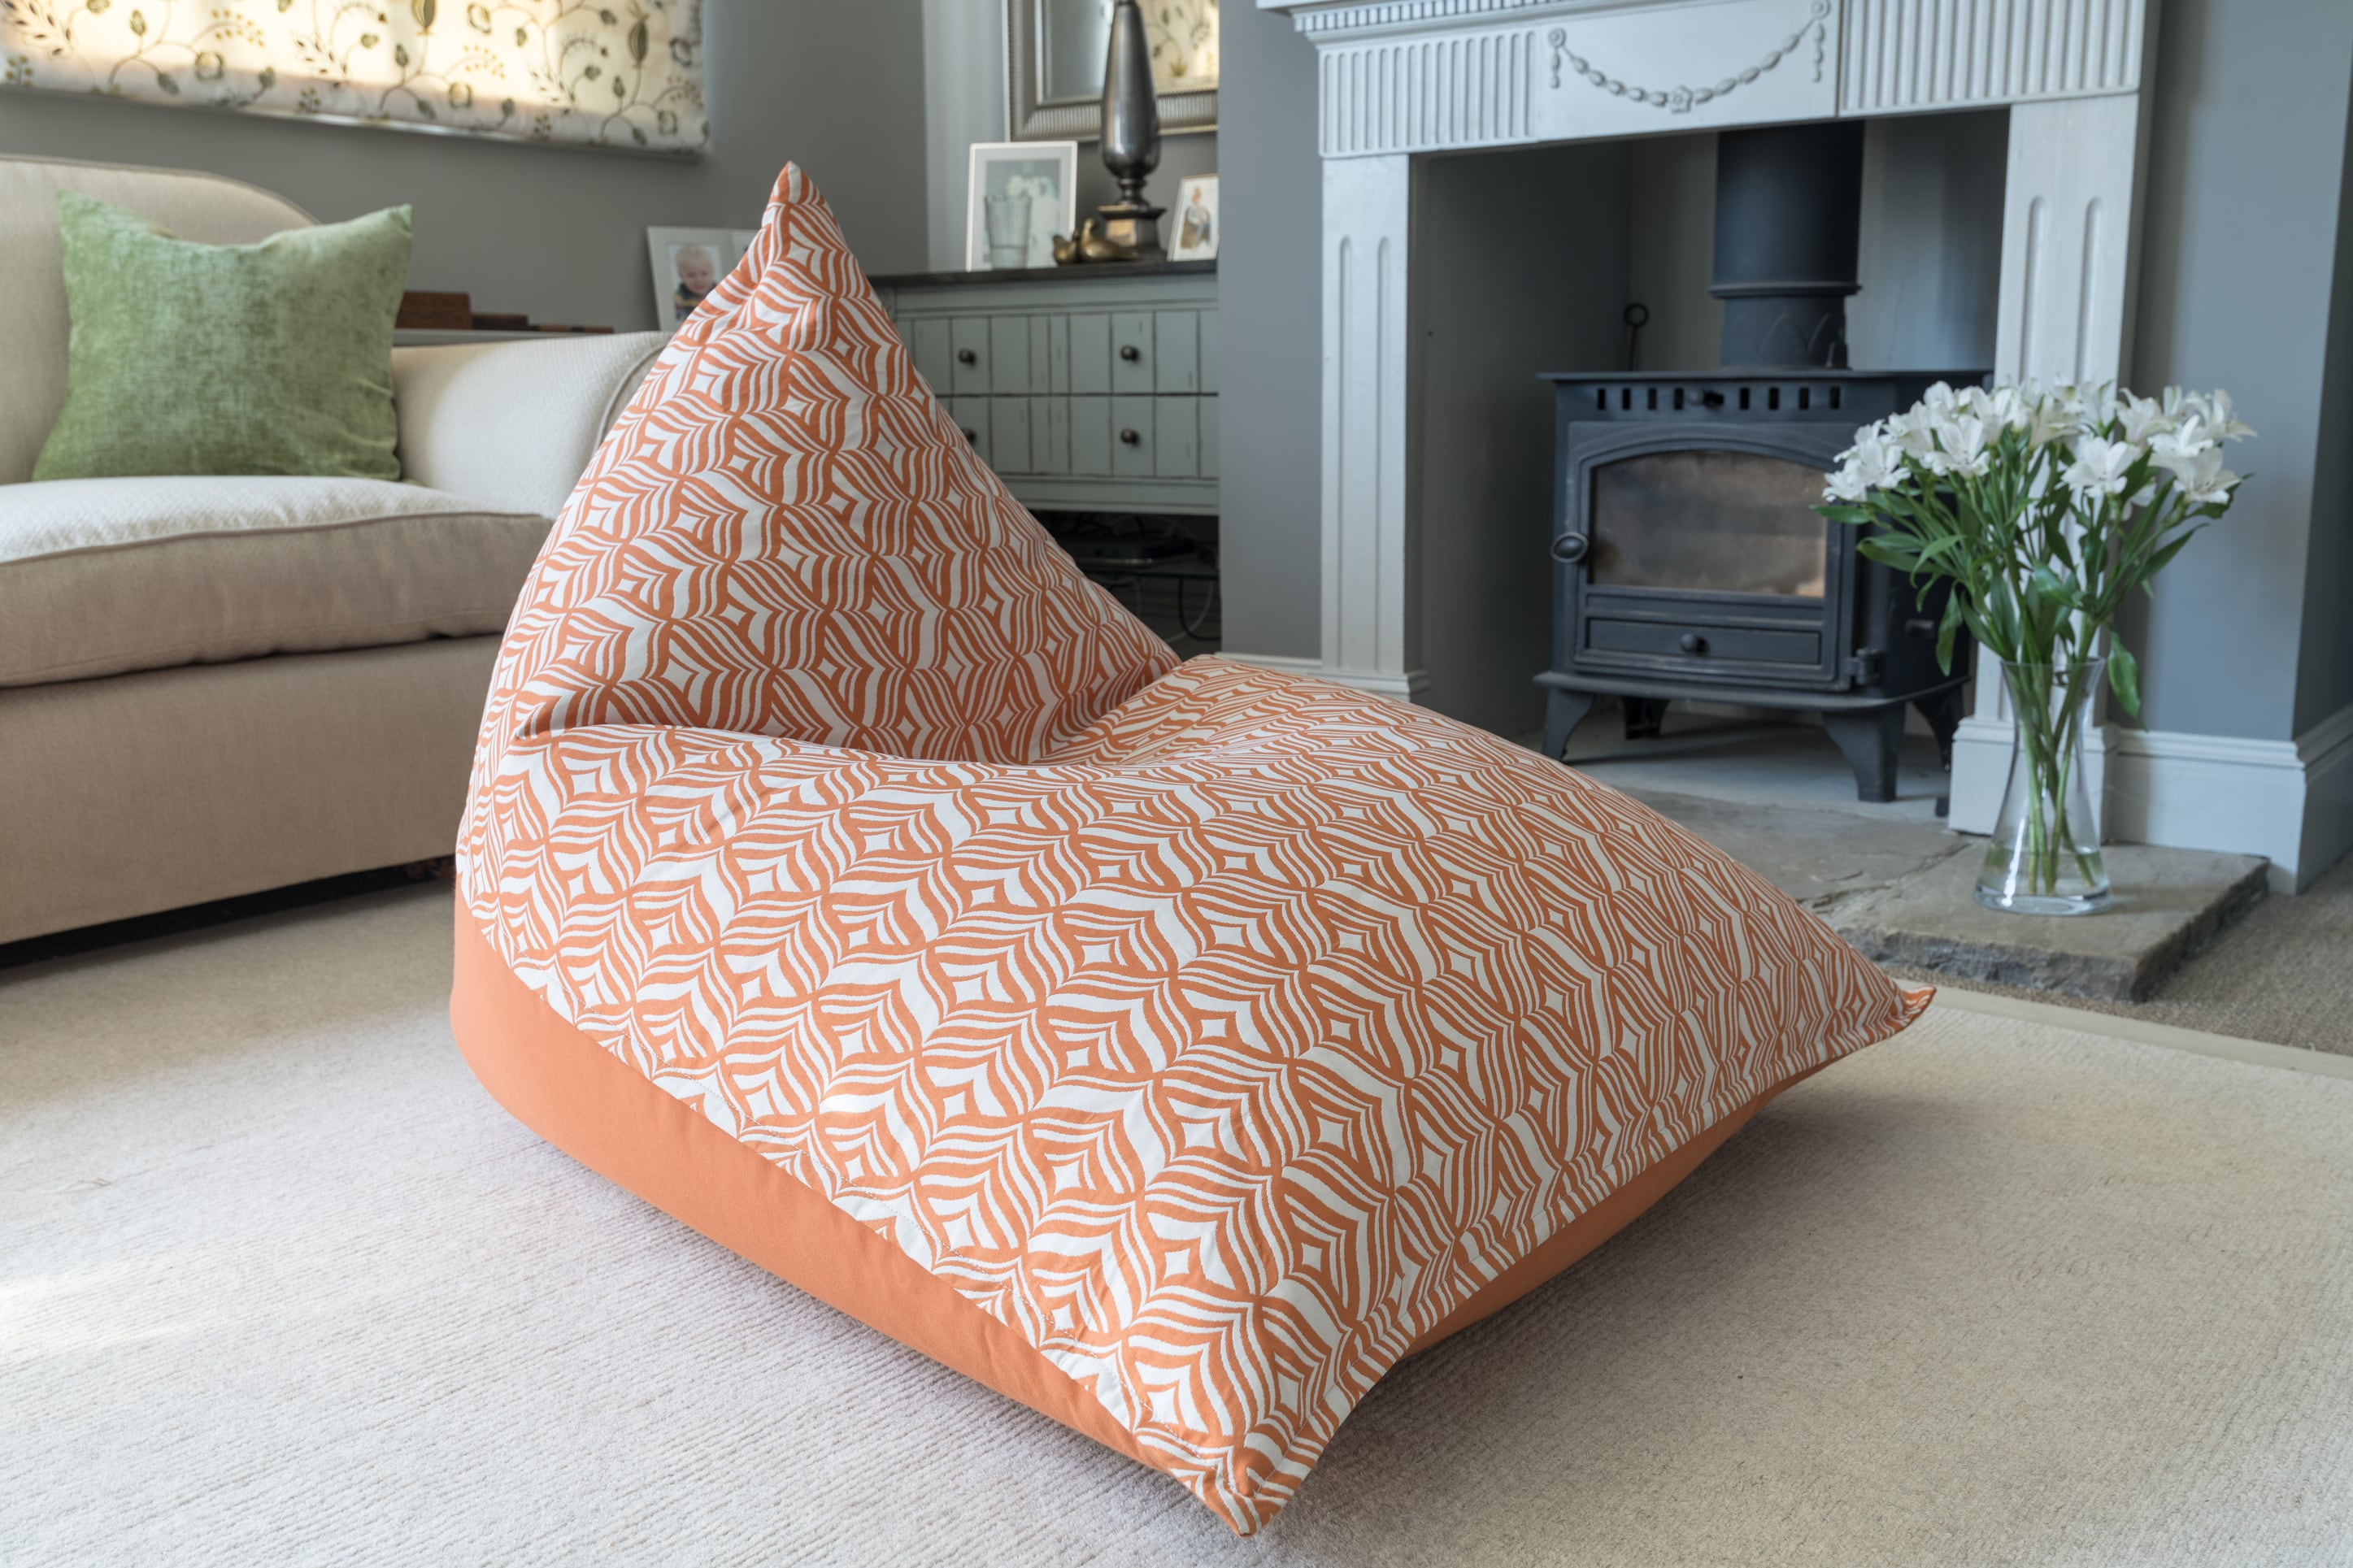 Armadillo Sun bean bag chair in orange and white tulip pattern indoors